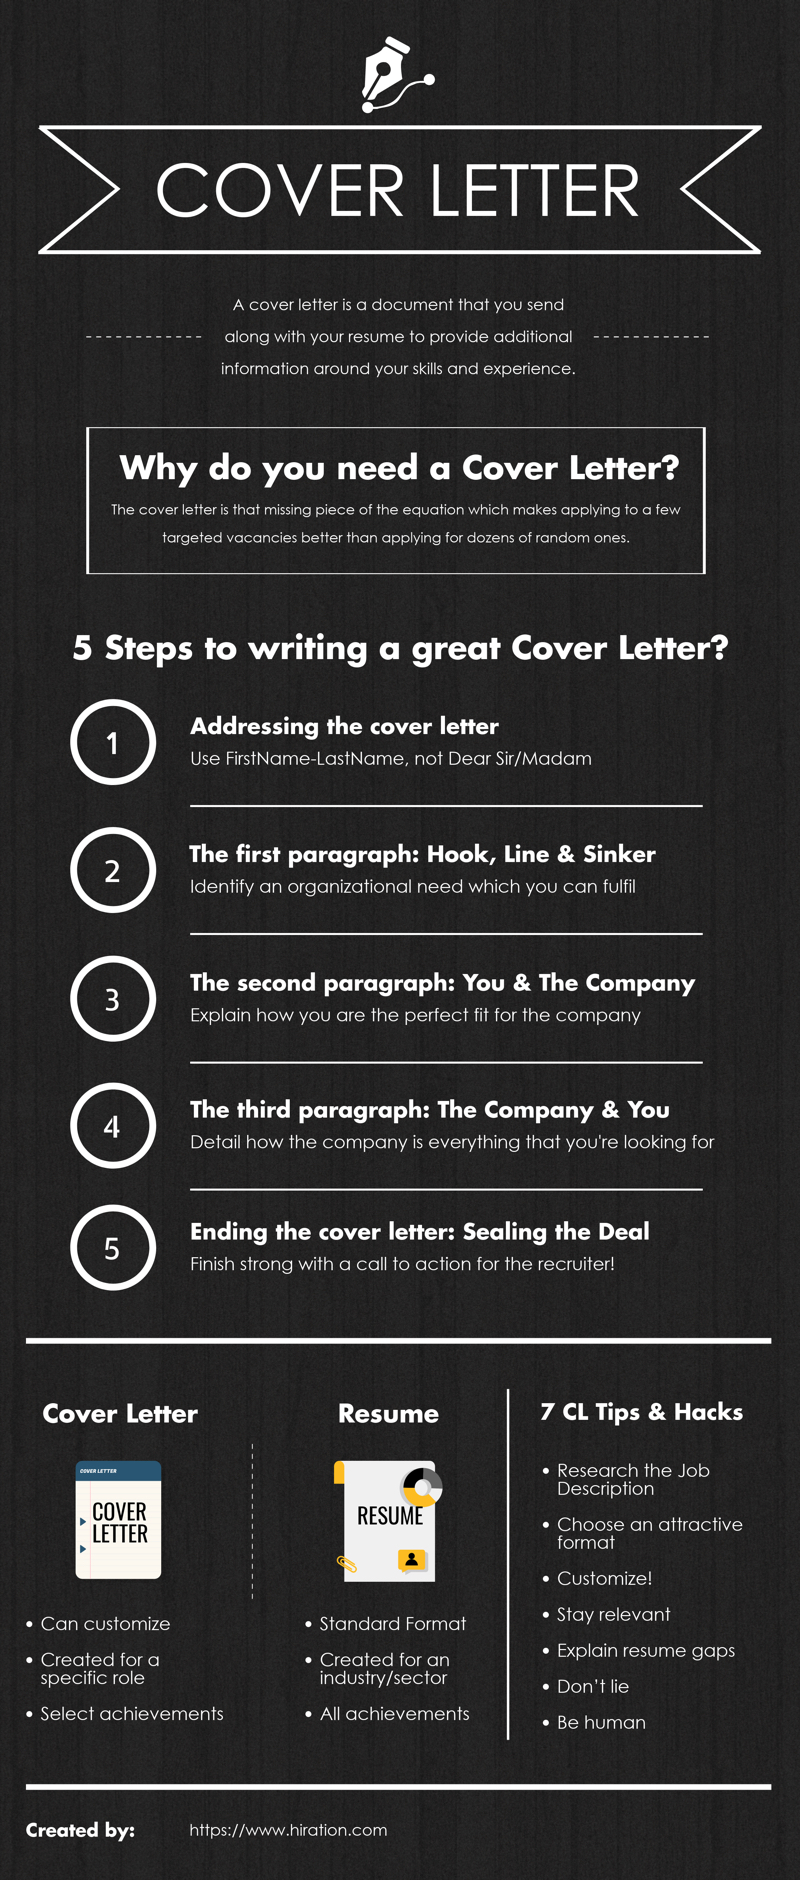 How to write a Cover Letter  2019